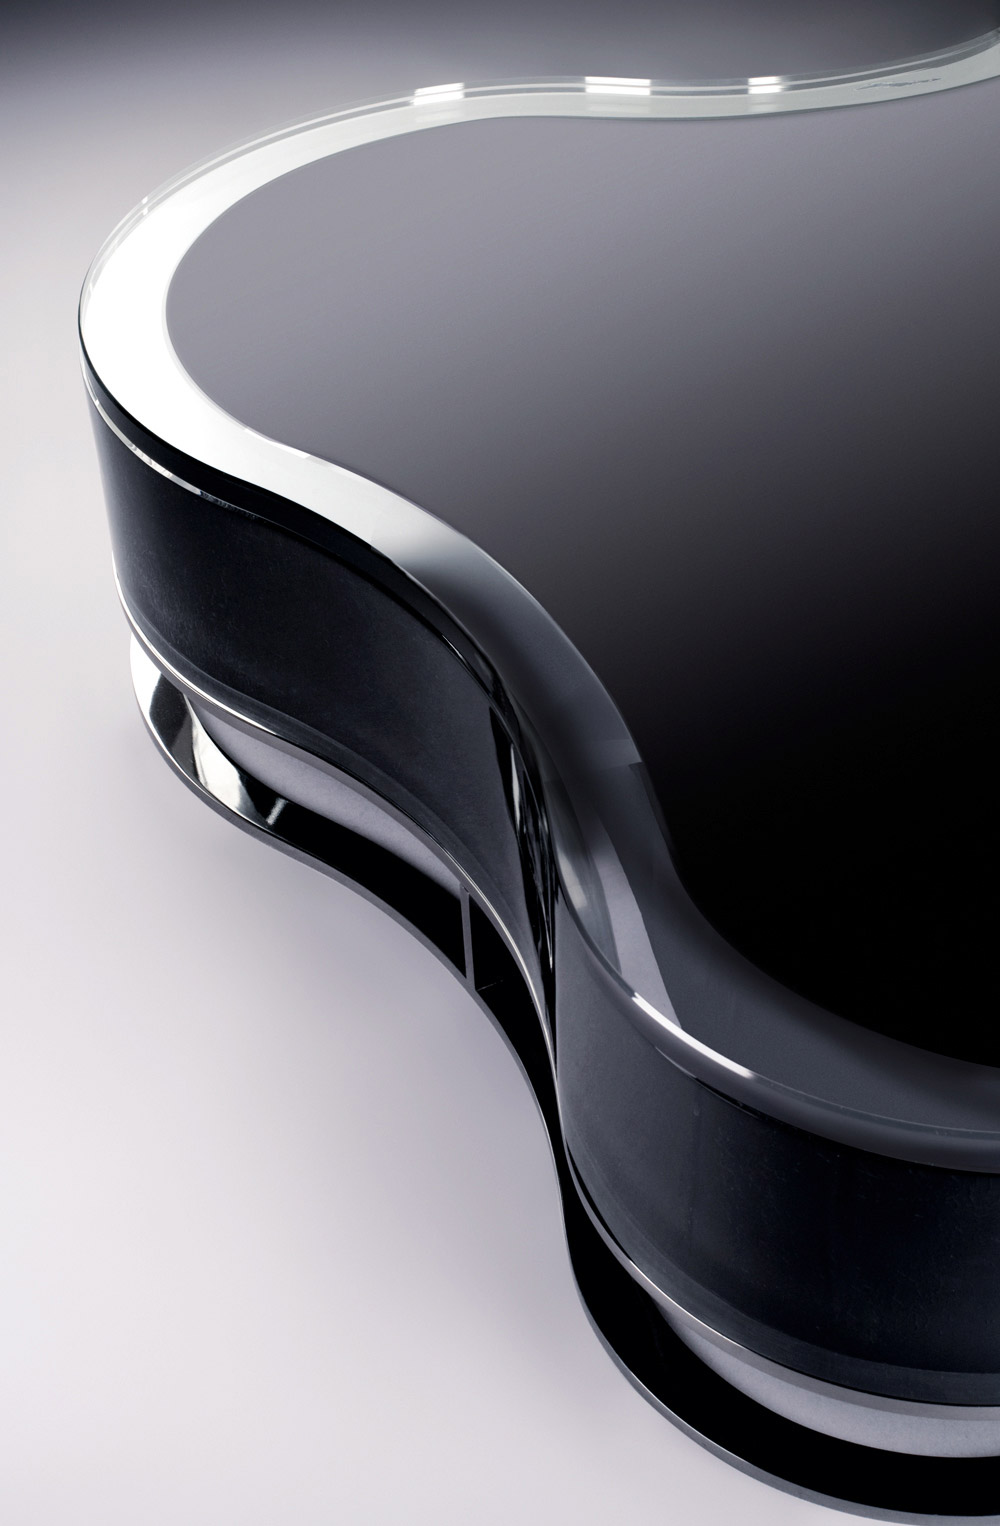 Custom furniture design black glass table close-up